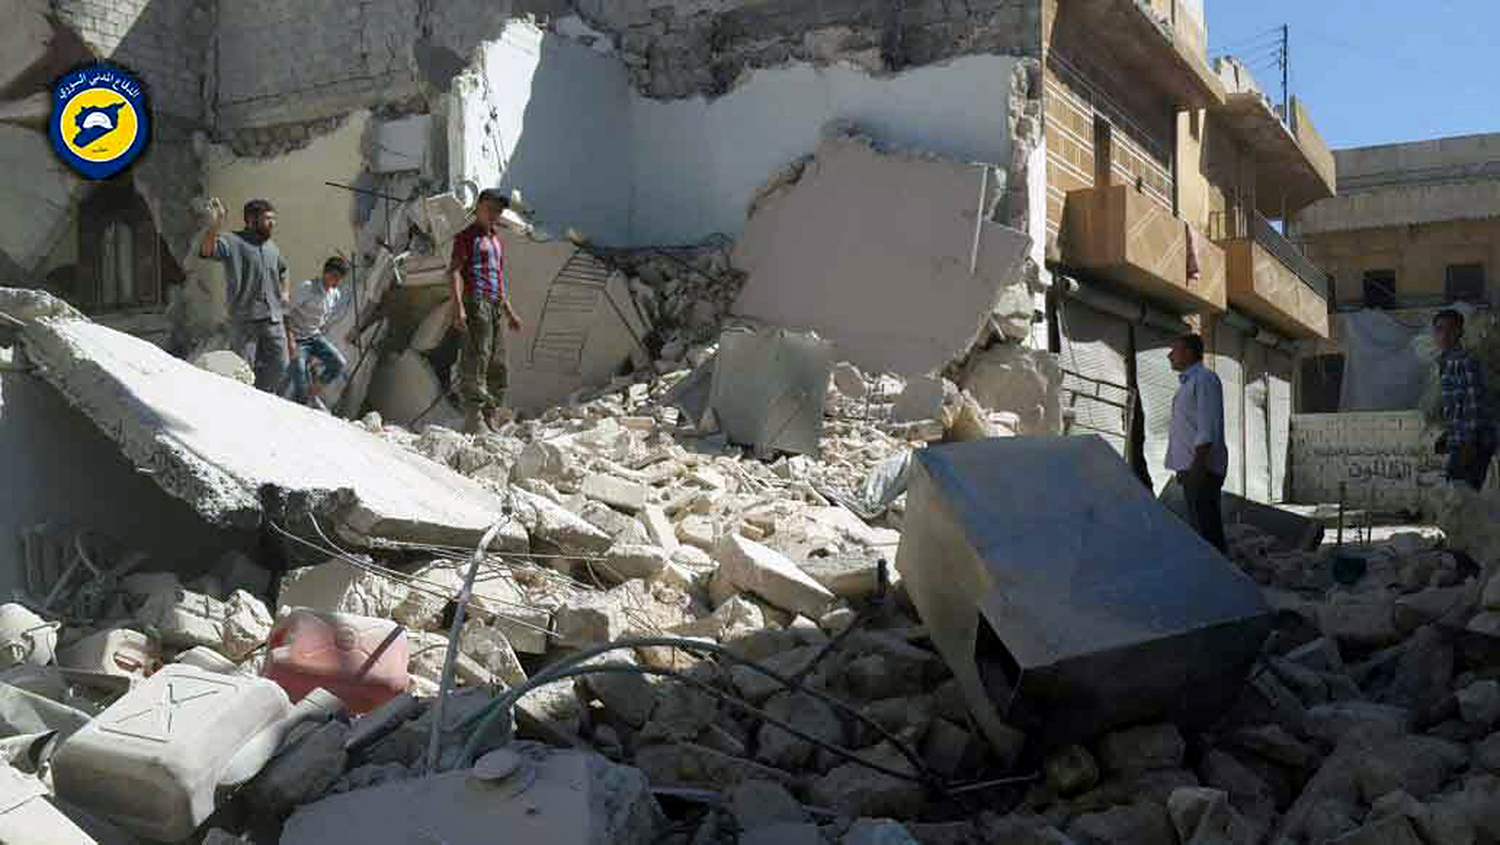 """This photo provided by the Syrian Civil Defense group known as the White Helmets, shows Syrians inspecting damaged buildings after airstrikes hit the Bustan al-Qasr neighborhood of Aleppo, Syria, Sunday, Sept. 25, 2016. A broad coalition of Syrian rebels denounced international negotiations for peace as """"meaningless"""" on Sunday, as the U.N. Security Council prepared to convene an emergency meeting about the spiraling violence in Syria. (Syrian Civil Defense White Helmets via AP)"""